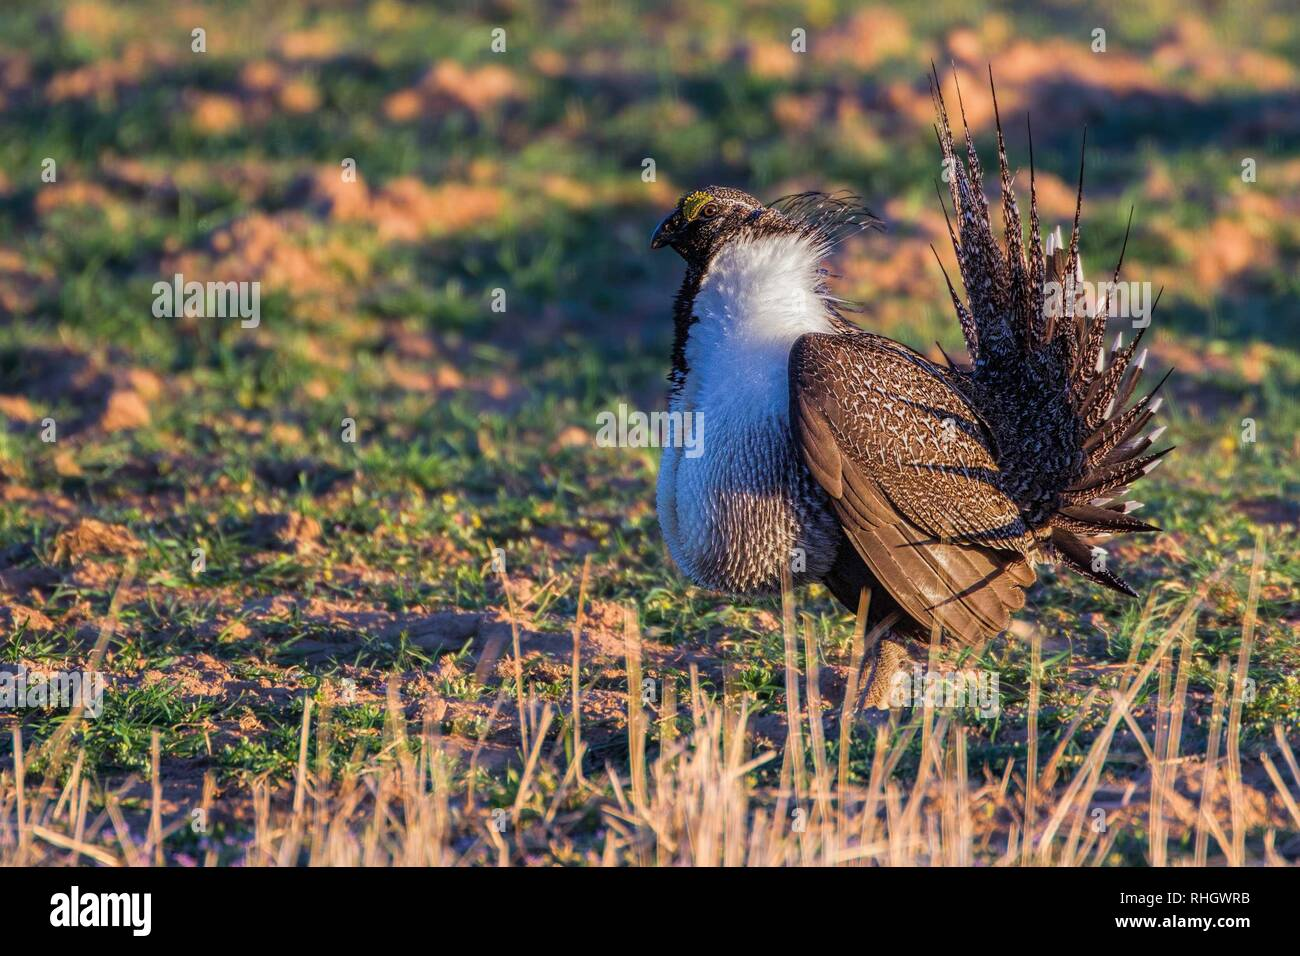 A male sage grouse (Centrocercus urophasianus) displays at a lek in Colorado - Stock Image